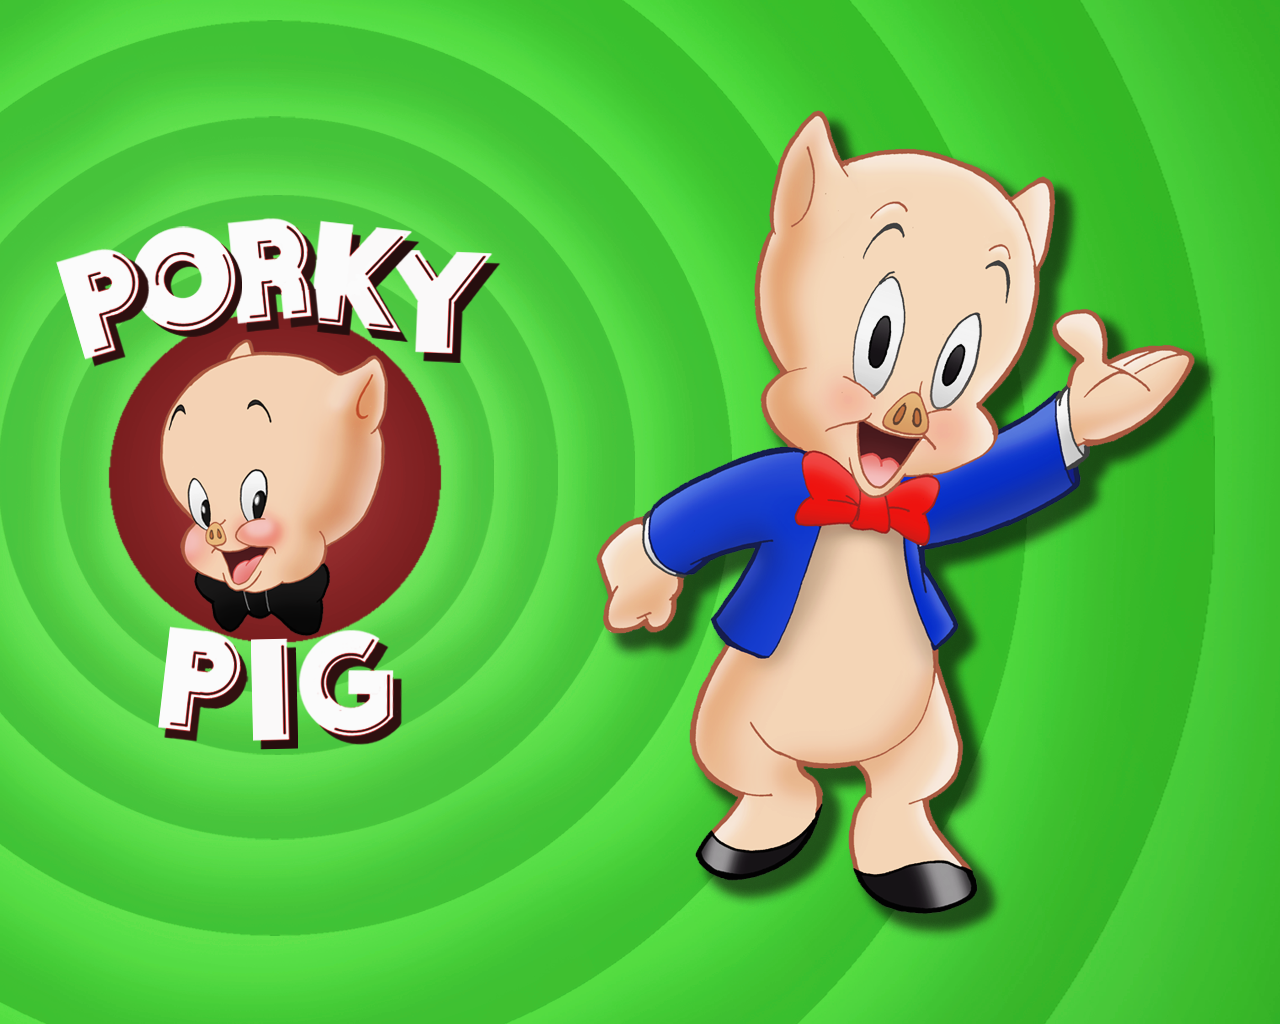 Image detail for this guy next to me is a real porky pig